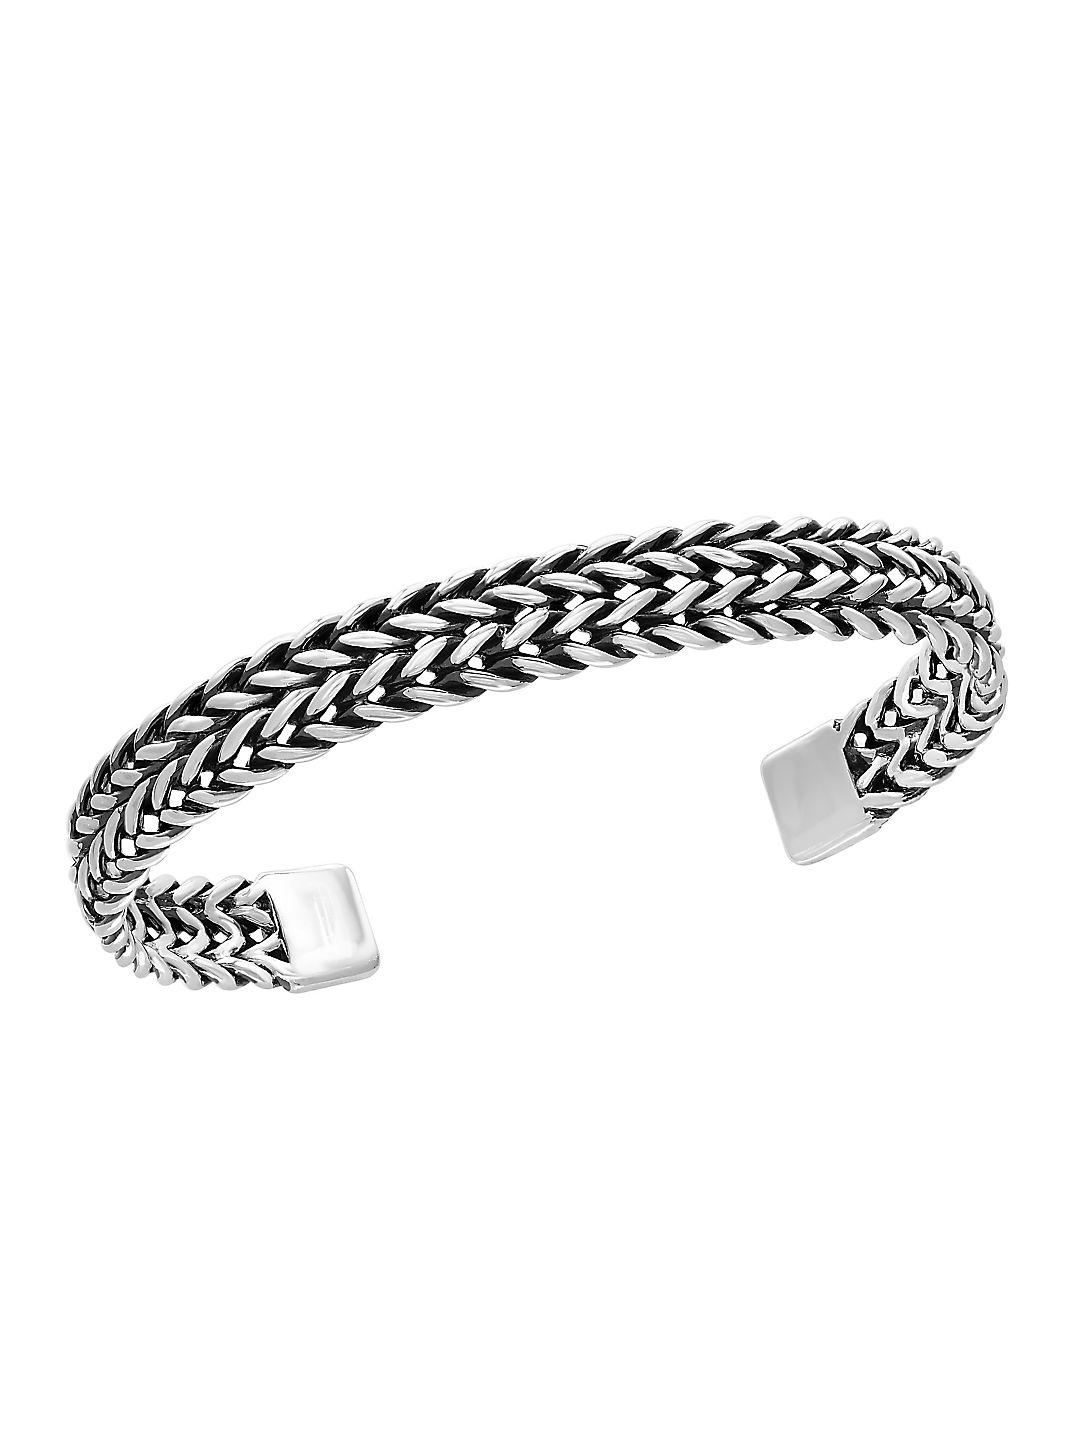 Effy 0.925 Sterling Silver Woven Cuff Bangle in Metallic